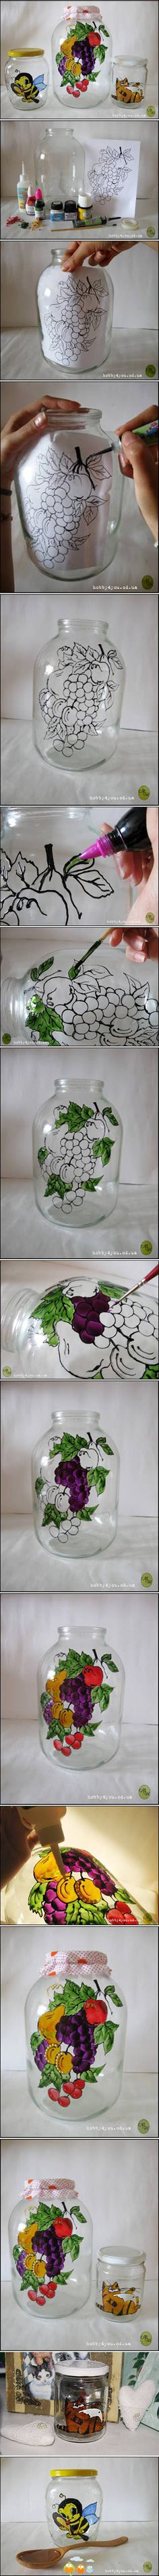 glass bottles and jars DIY Jar Art diy crafts craft ideas easy crafts diy ideas diy idea diy home easy diy diy art for the home crafty decor home ideas diy decorations Cute Crafts, Creative Crafts, Crafts To Make, Arts And Crafts, Easy Crafts, Kids Crafts, Mason Jar Crafts, Bottle Crafts, Mason Jars